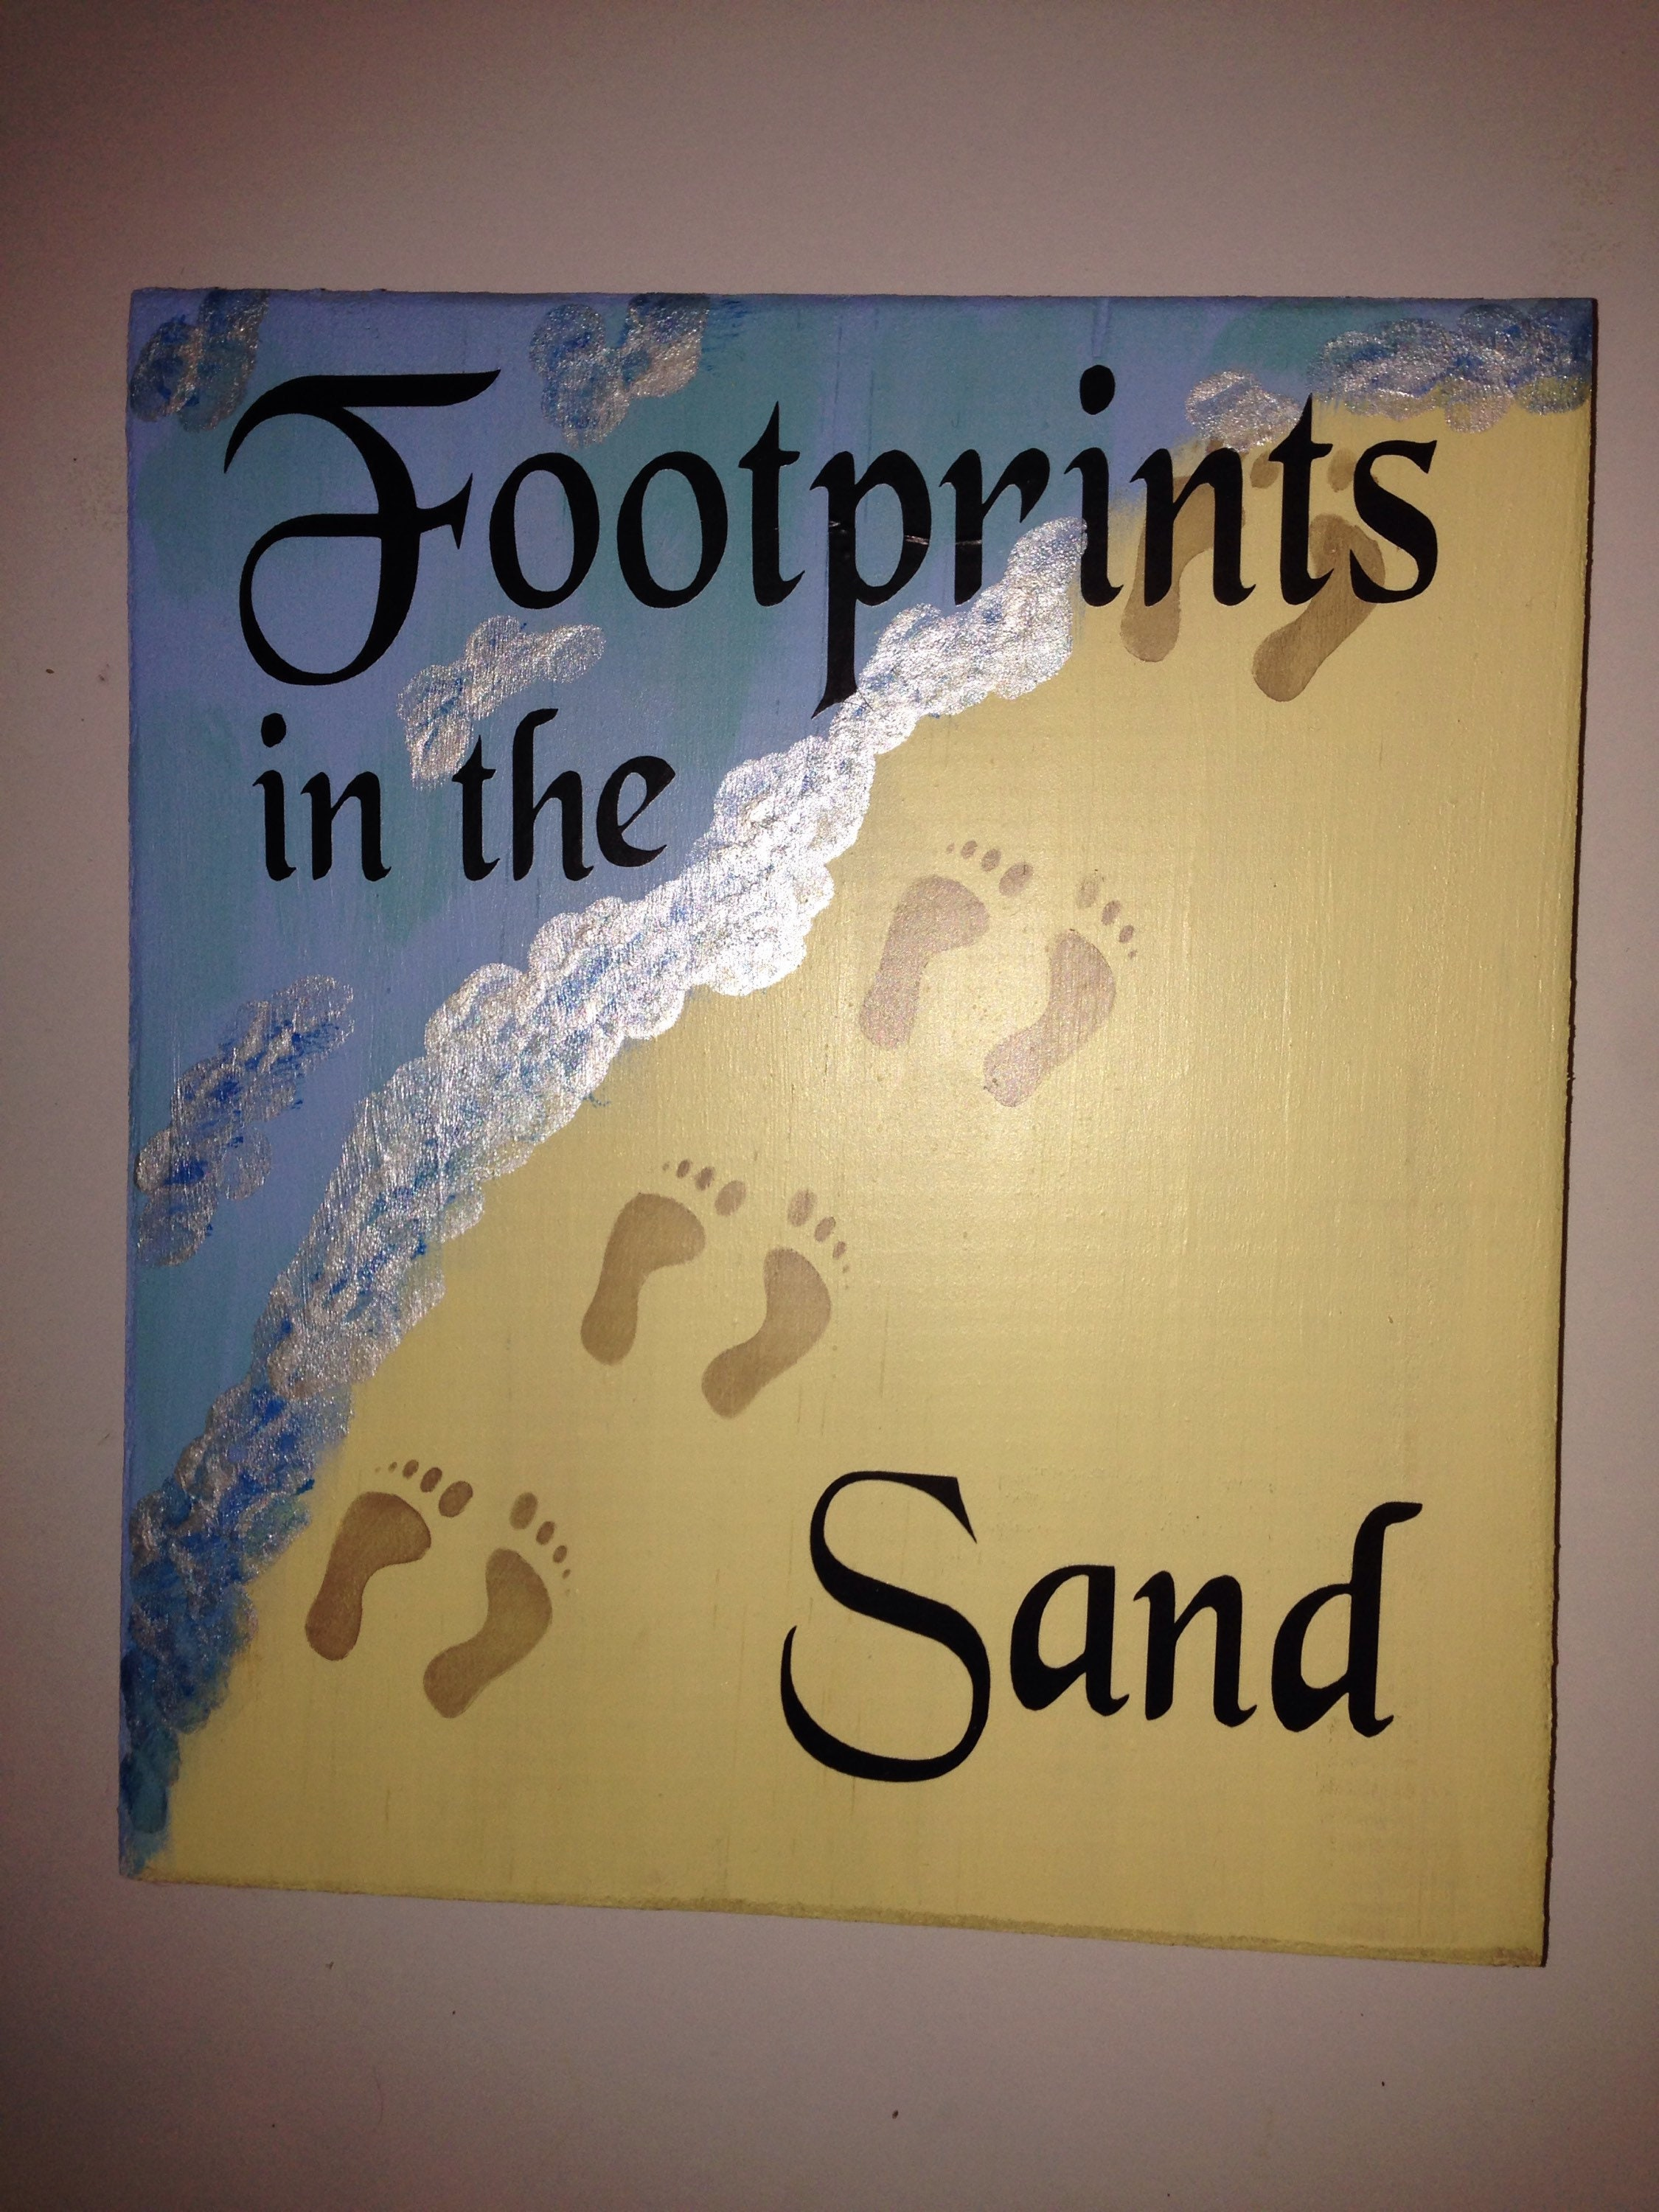 Footprints in the sand hand painted sign